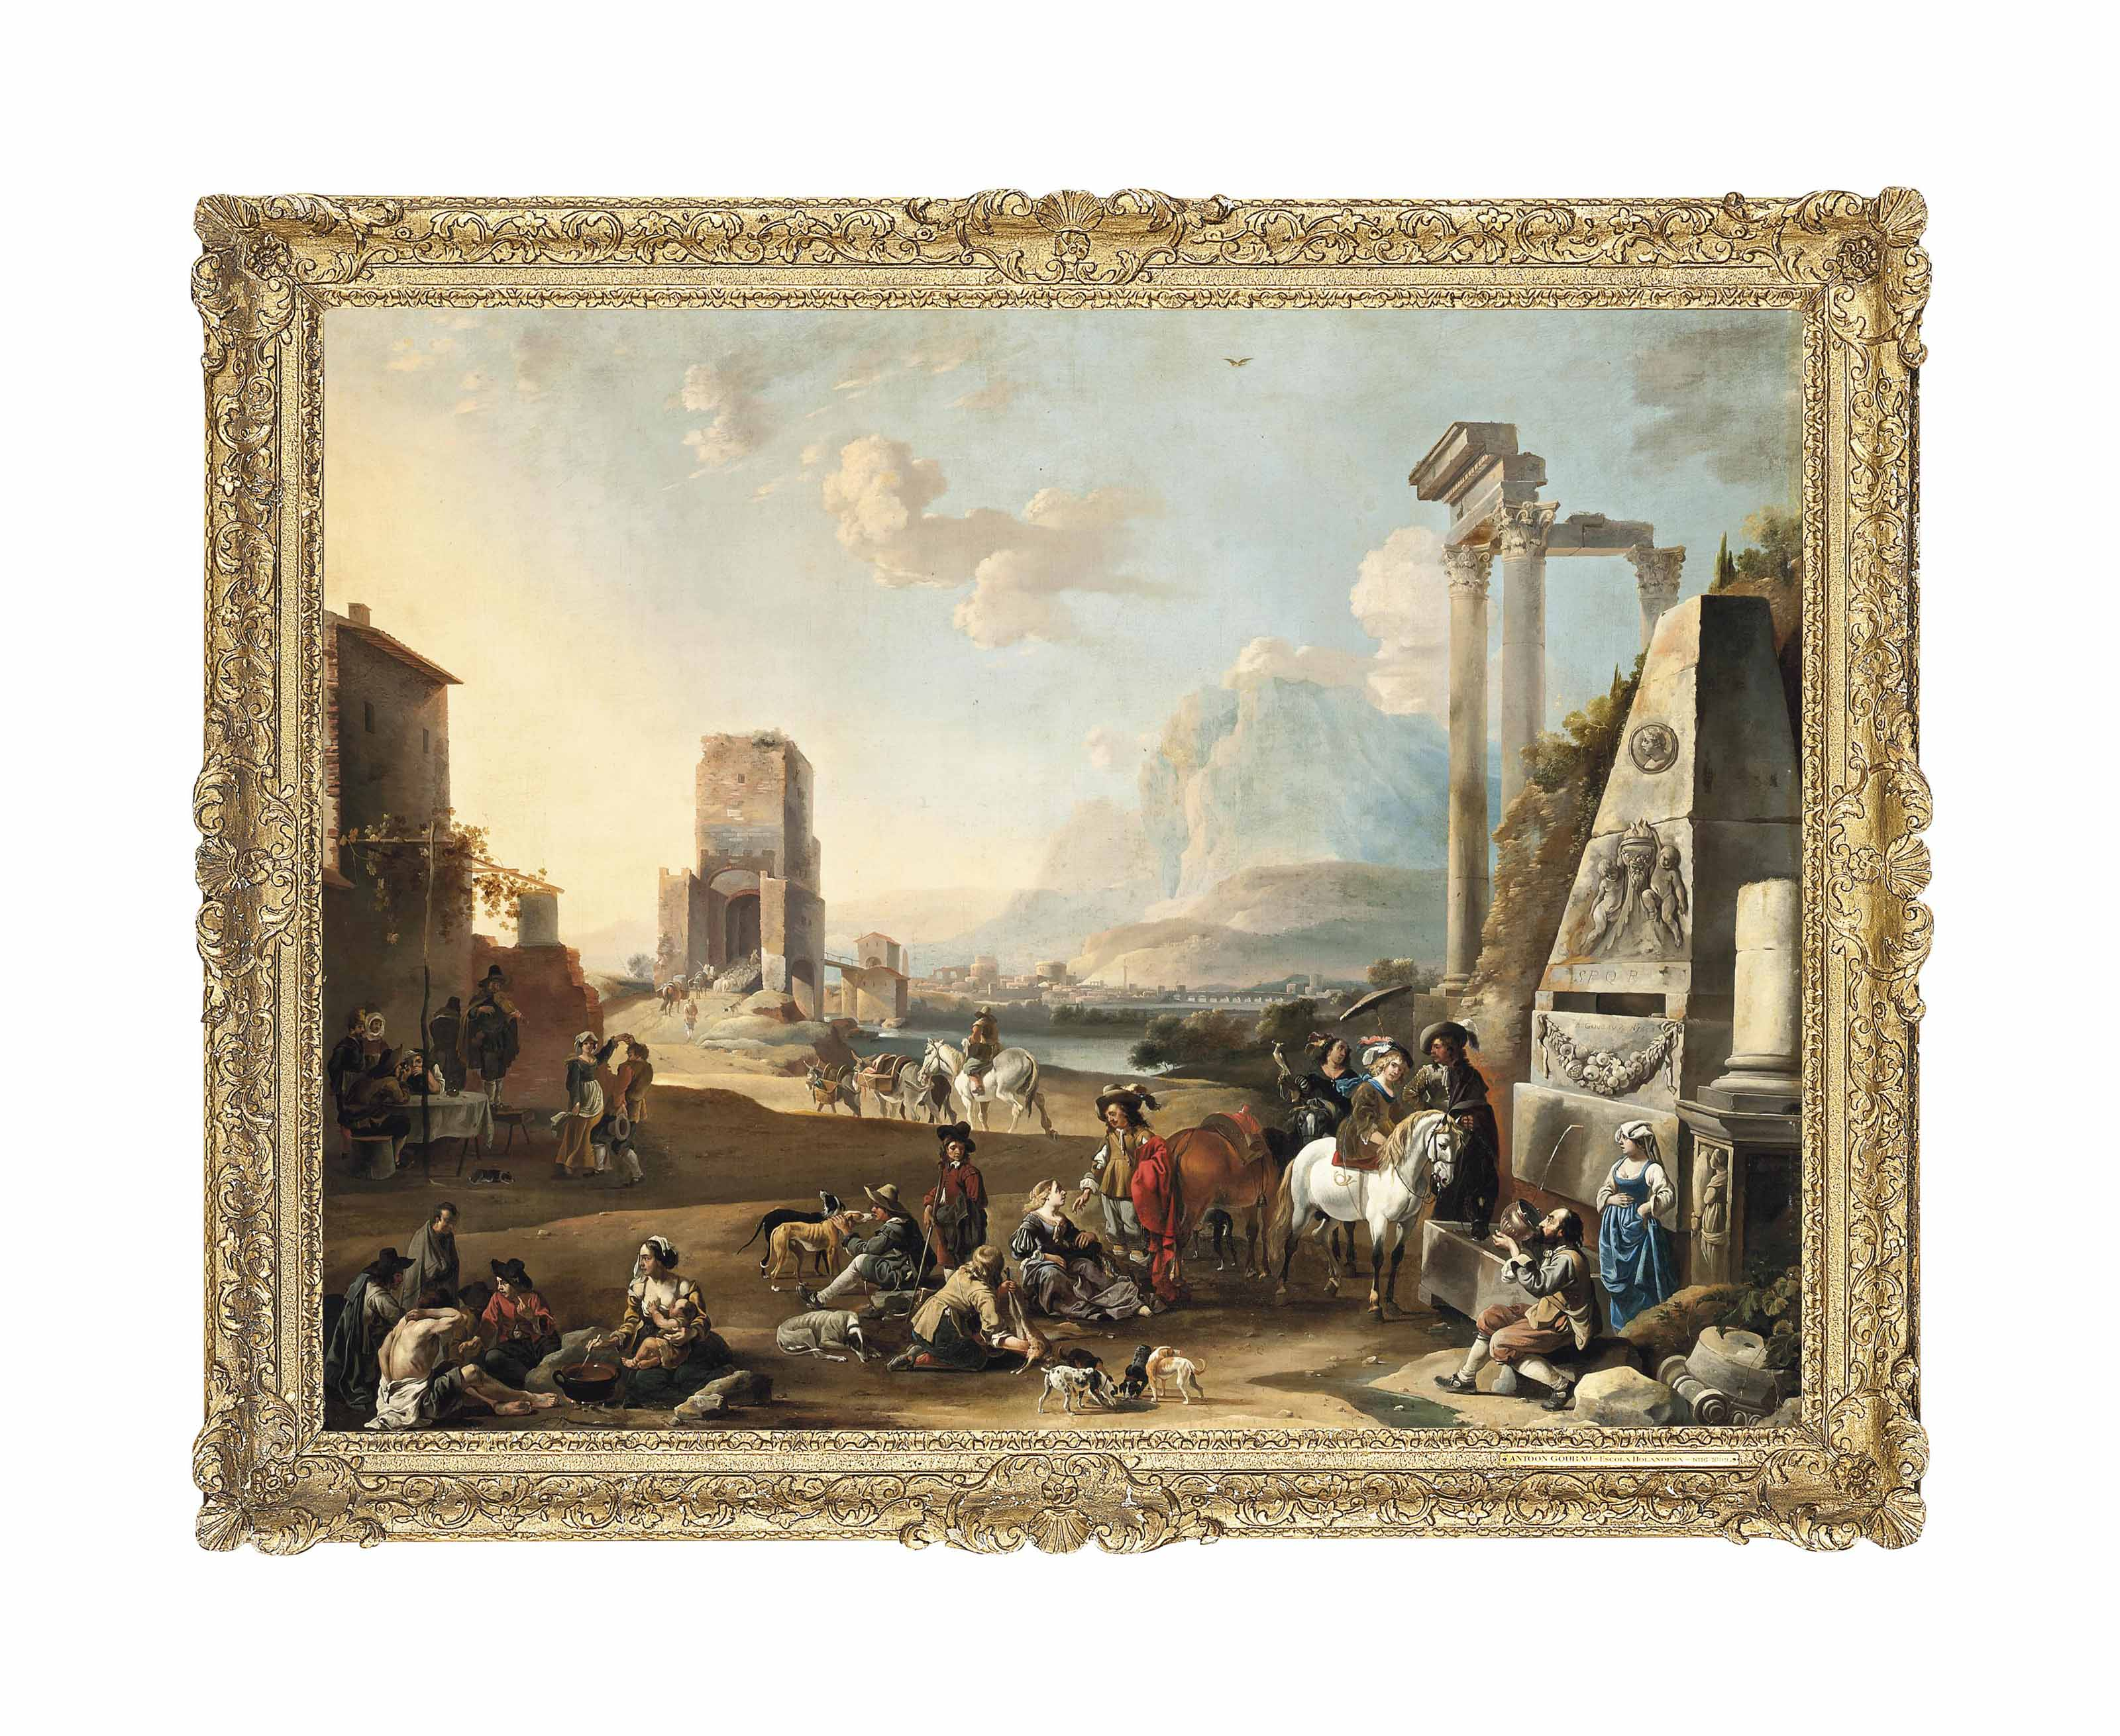 An Italianate classical landscape with figures resting near a fountain, others making merry, a town by a river beyond